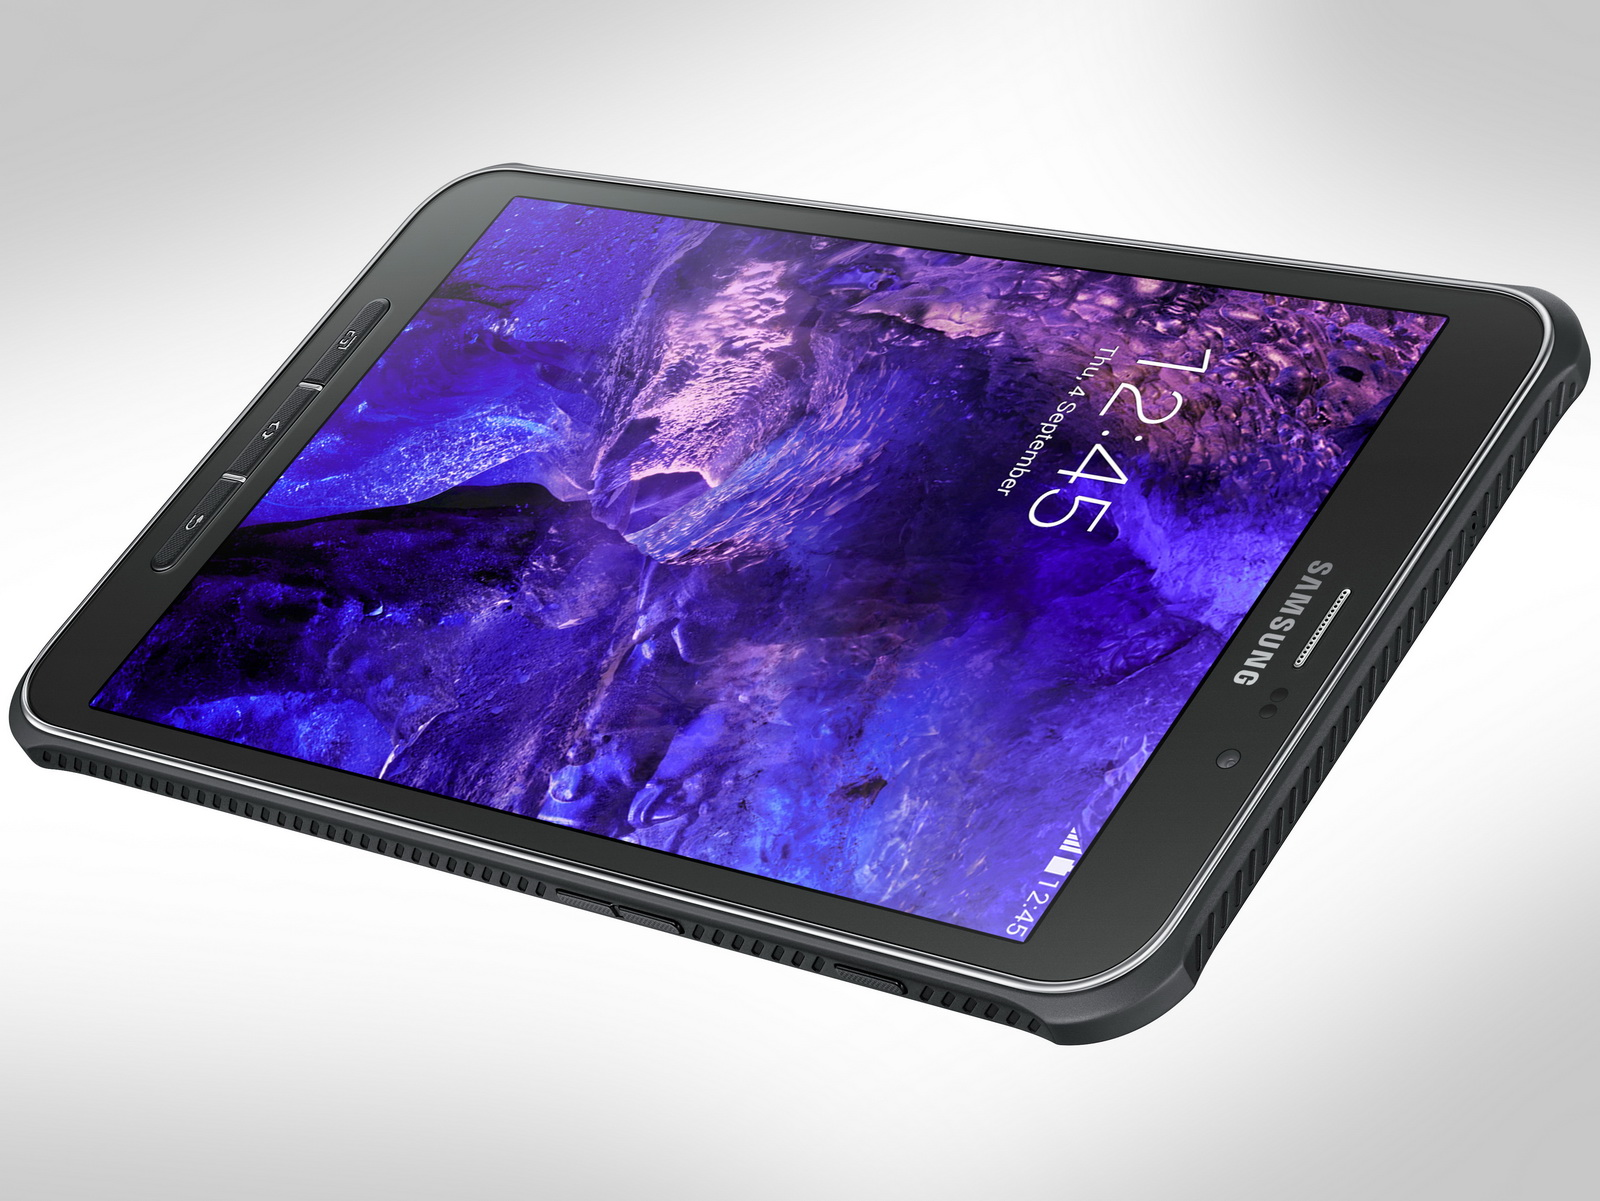 ruggedized outdoor tablet samsung galaxy tab active news. Black Bedroom Furniture Sets. Home Design Ideas